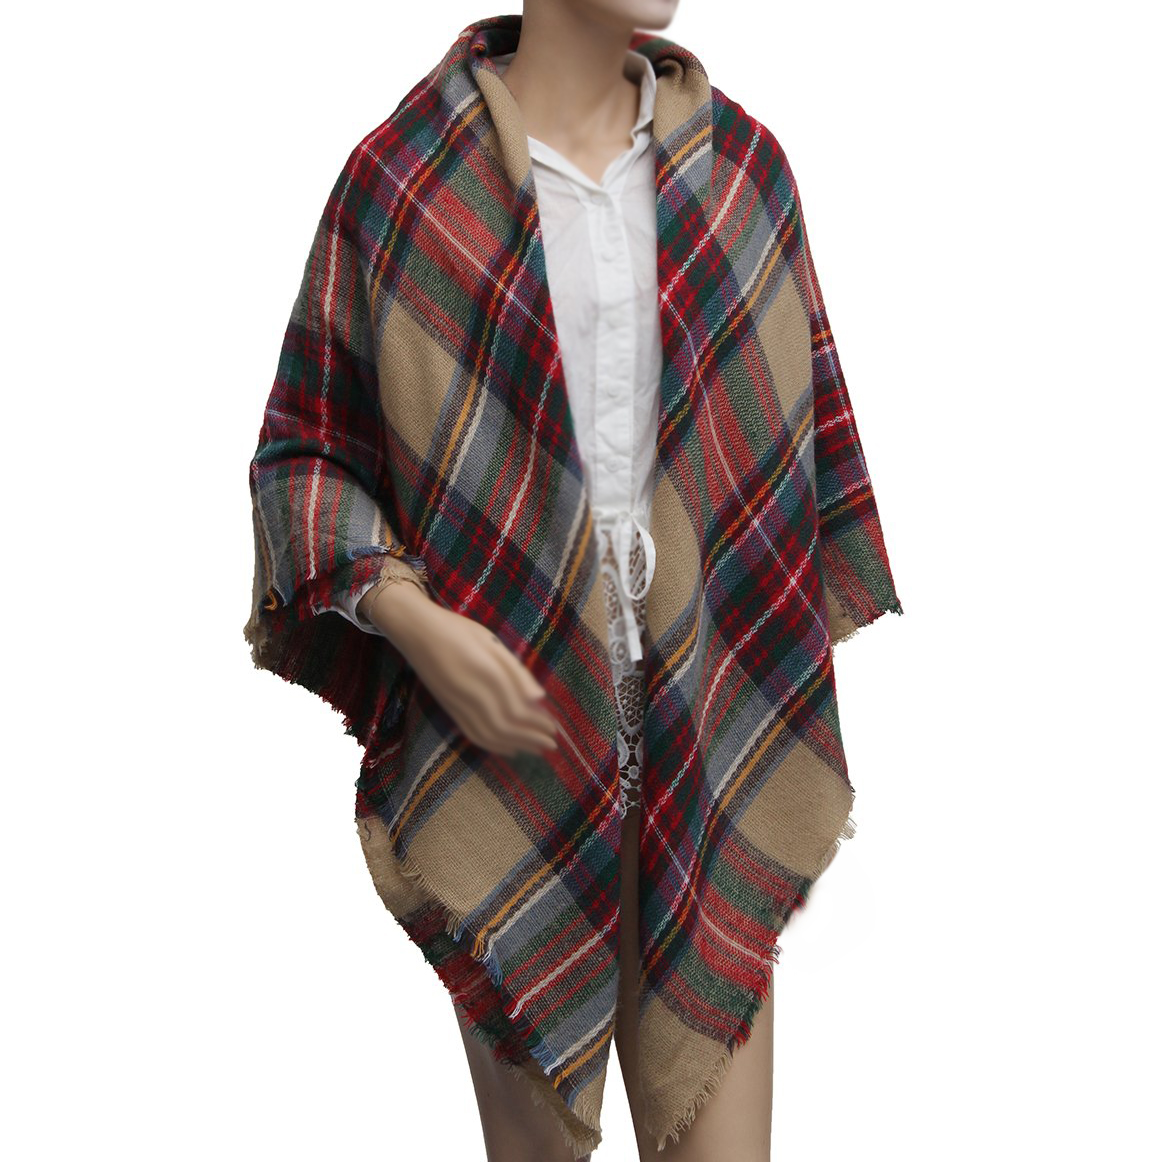 TFGS Women wide Pashmina font b Tartan b font wrapped scarf shawl stole red Plaid collar